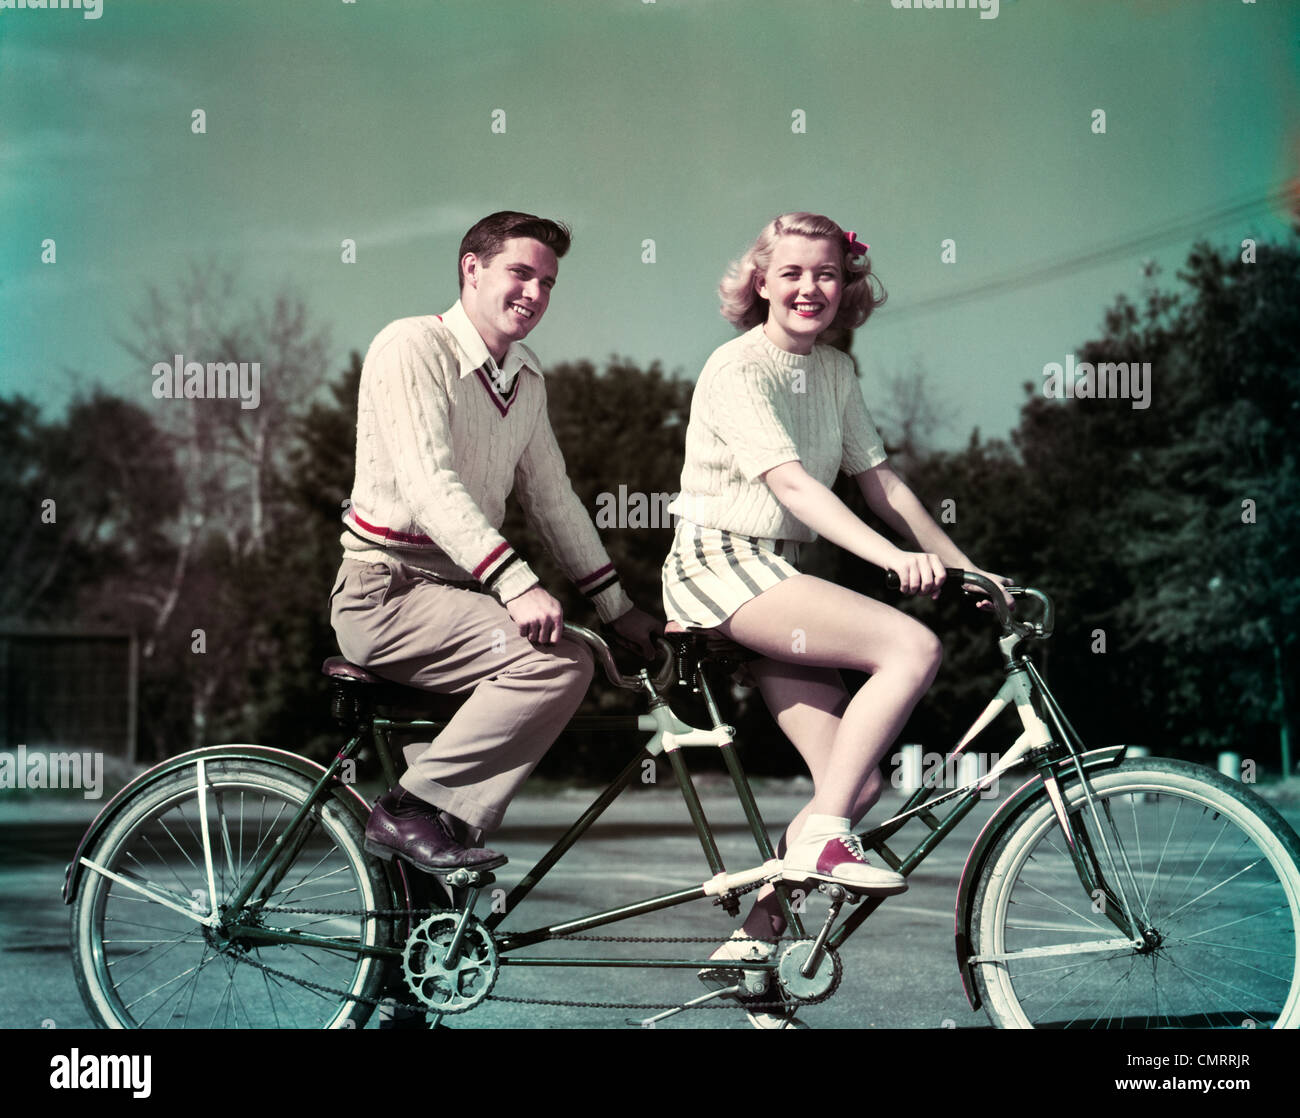 1950 SMILING COUPLE RIDING TANDEM CONSTRUIT POUR DEUX Photo Stock